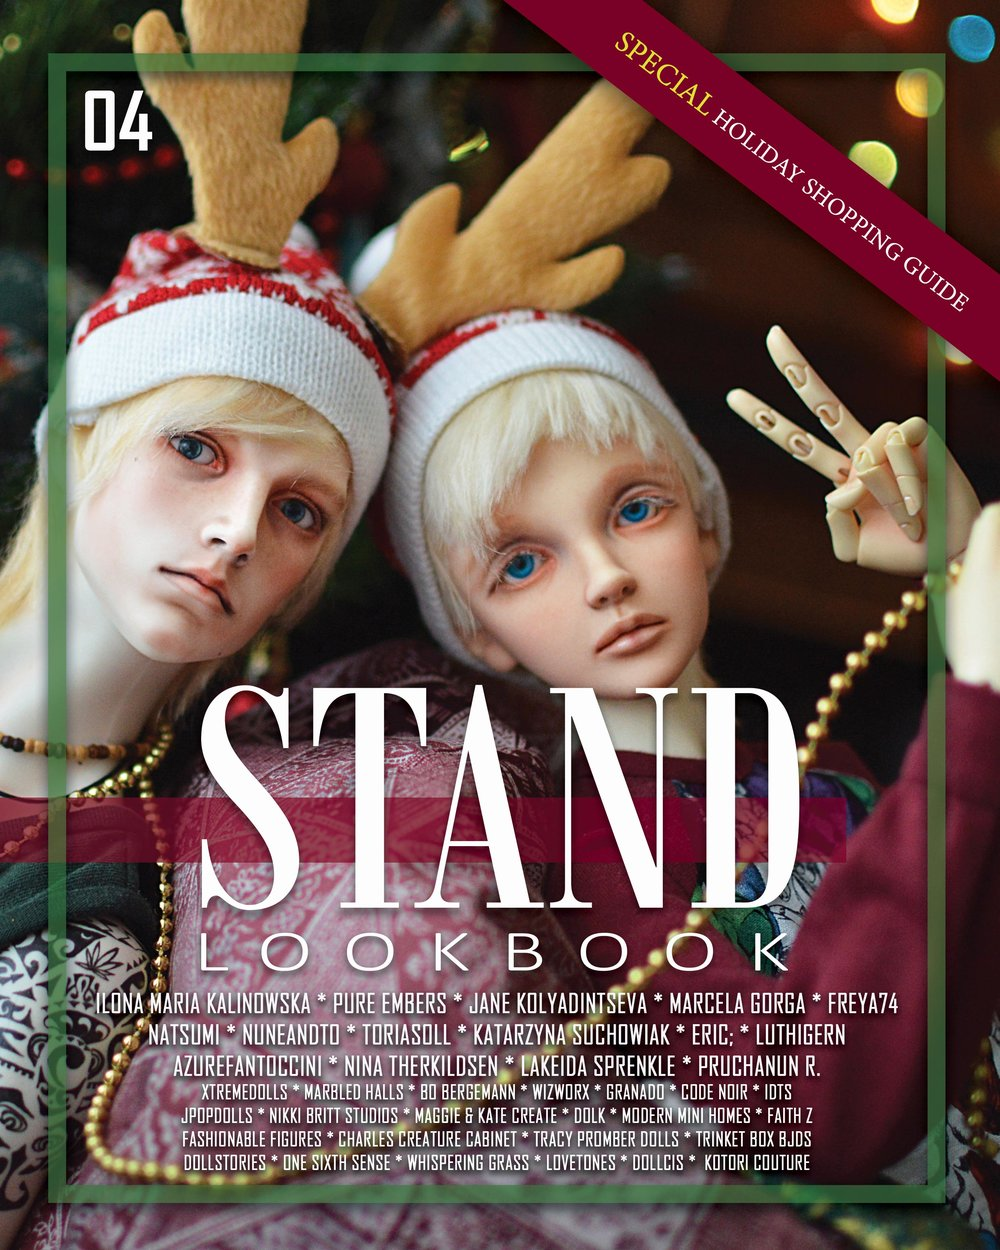 Holiday shopping guide is included with this issue!